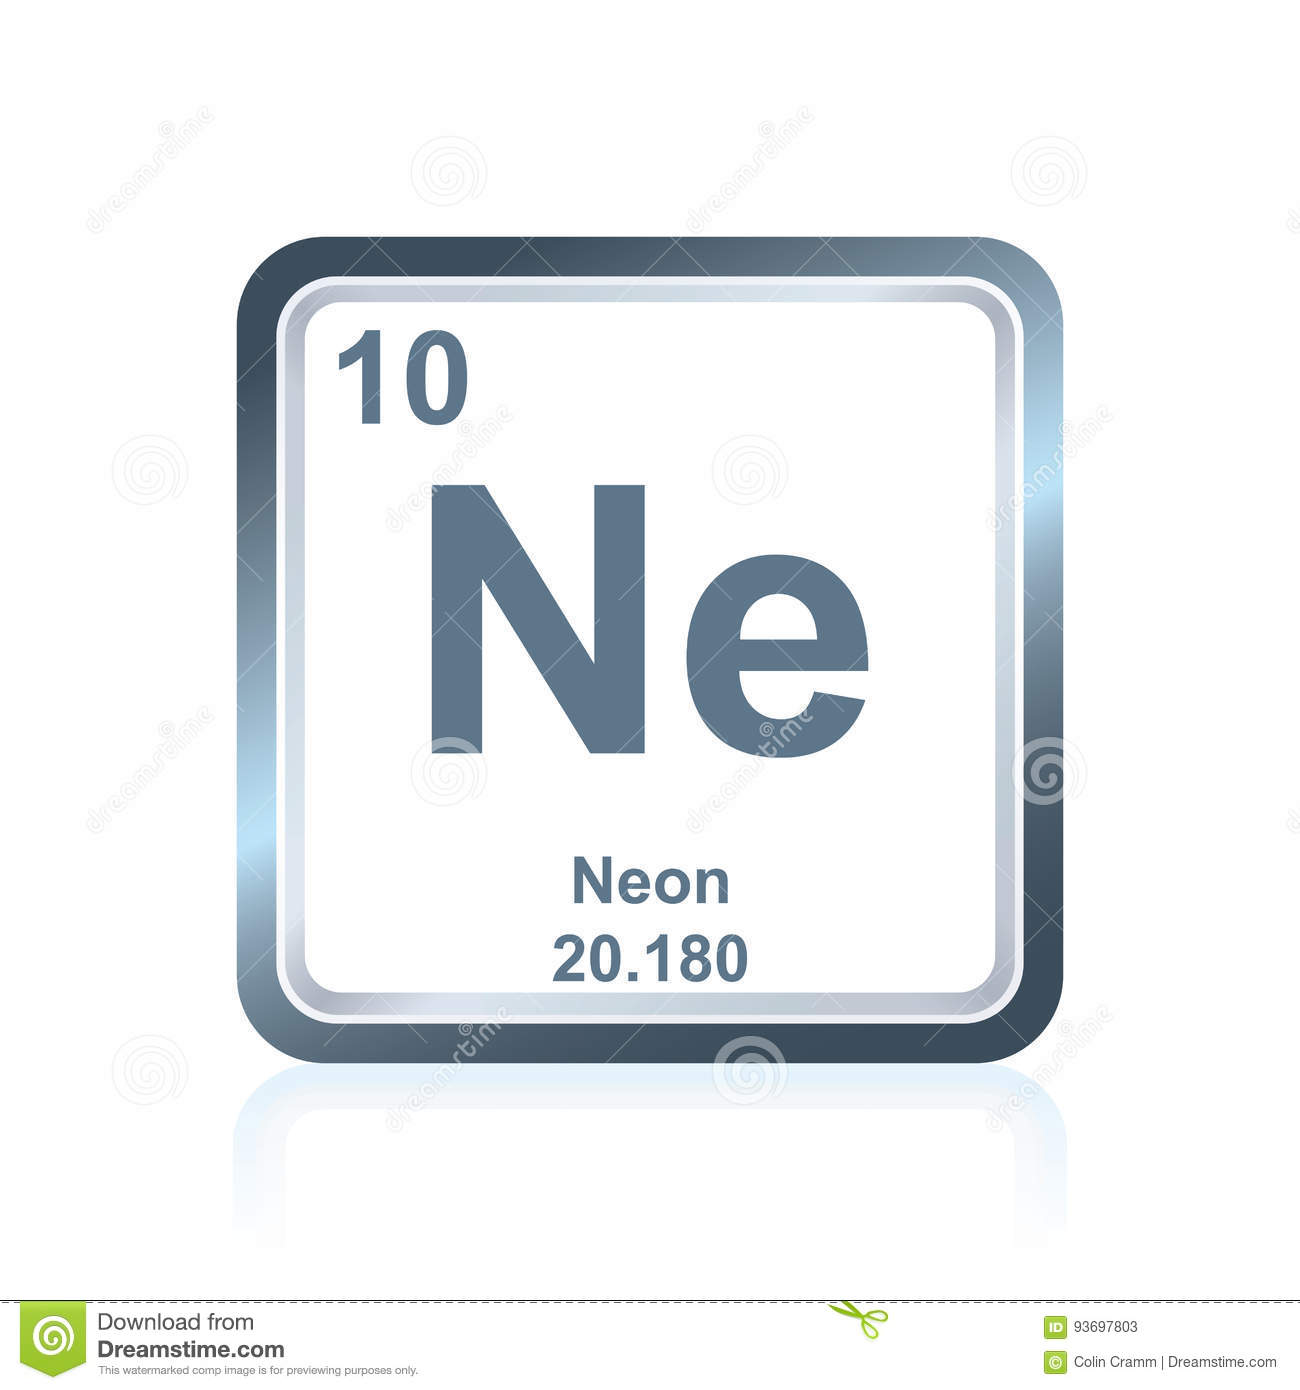 Chemical element neon from the periodic table stock vector download chemical element neon from the periodic table stock vector illustration of element numbering urtaz Choice Image